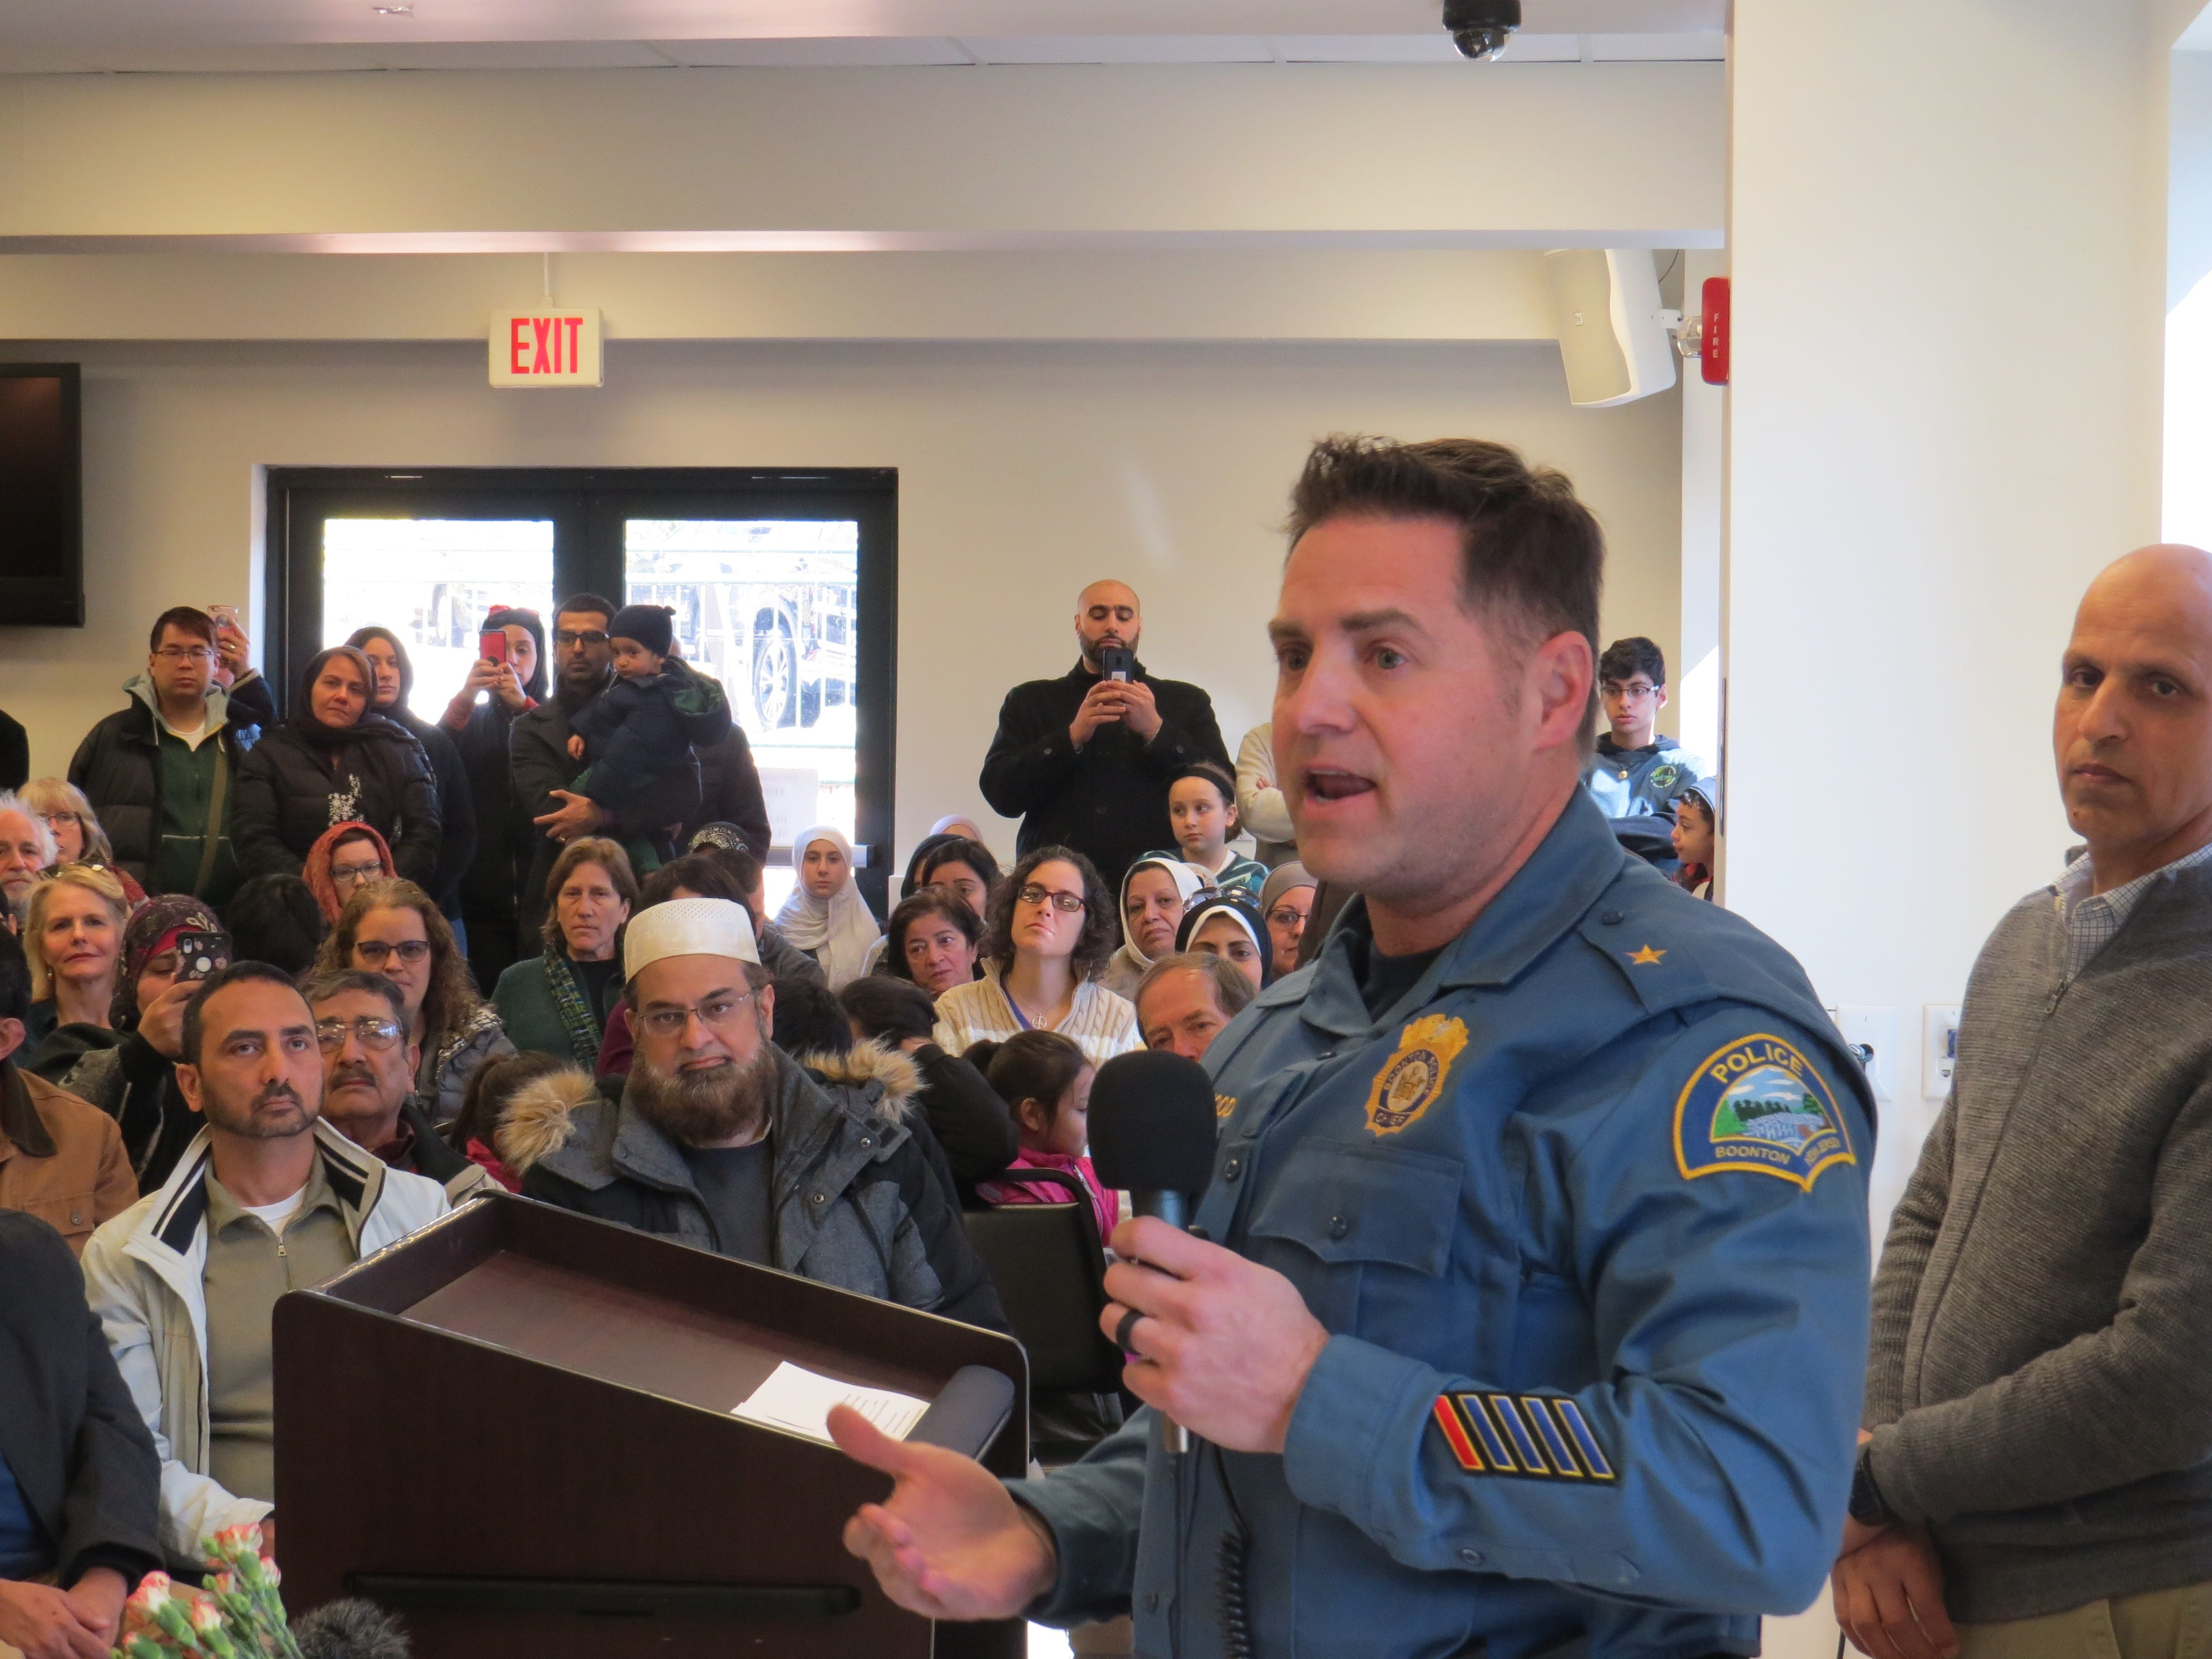 Boonton Police Chief David Mayhood speaks at a prayer vigil and march in remembrance of victims of recent mosque attacks in New Zealand drew hundreds to the Jam-E-Masjid Islamic Center in Boonton March 17, 2019.